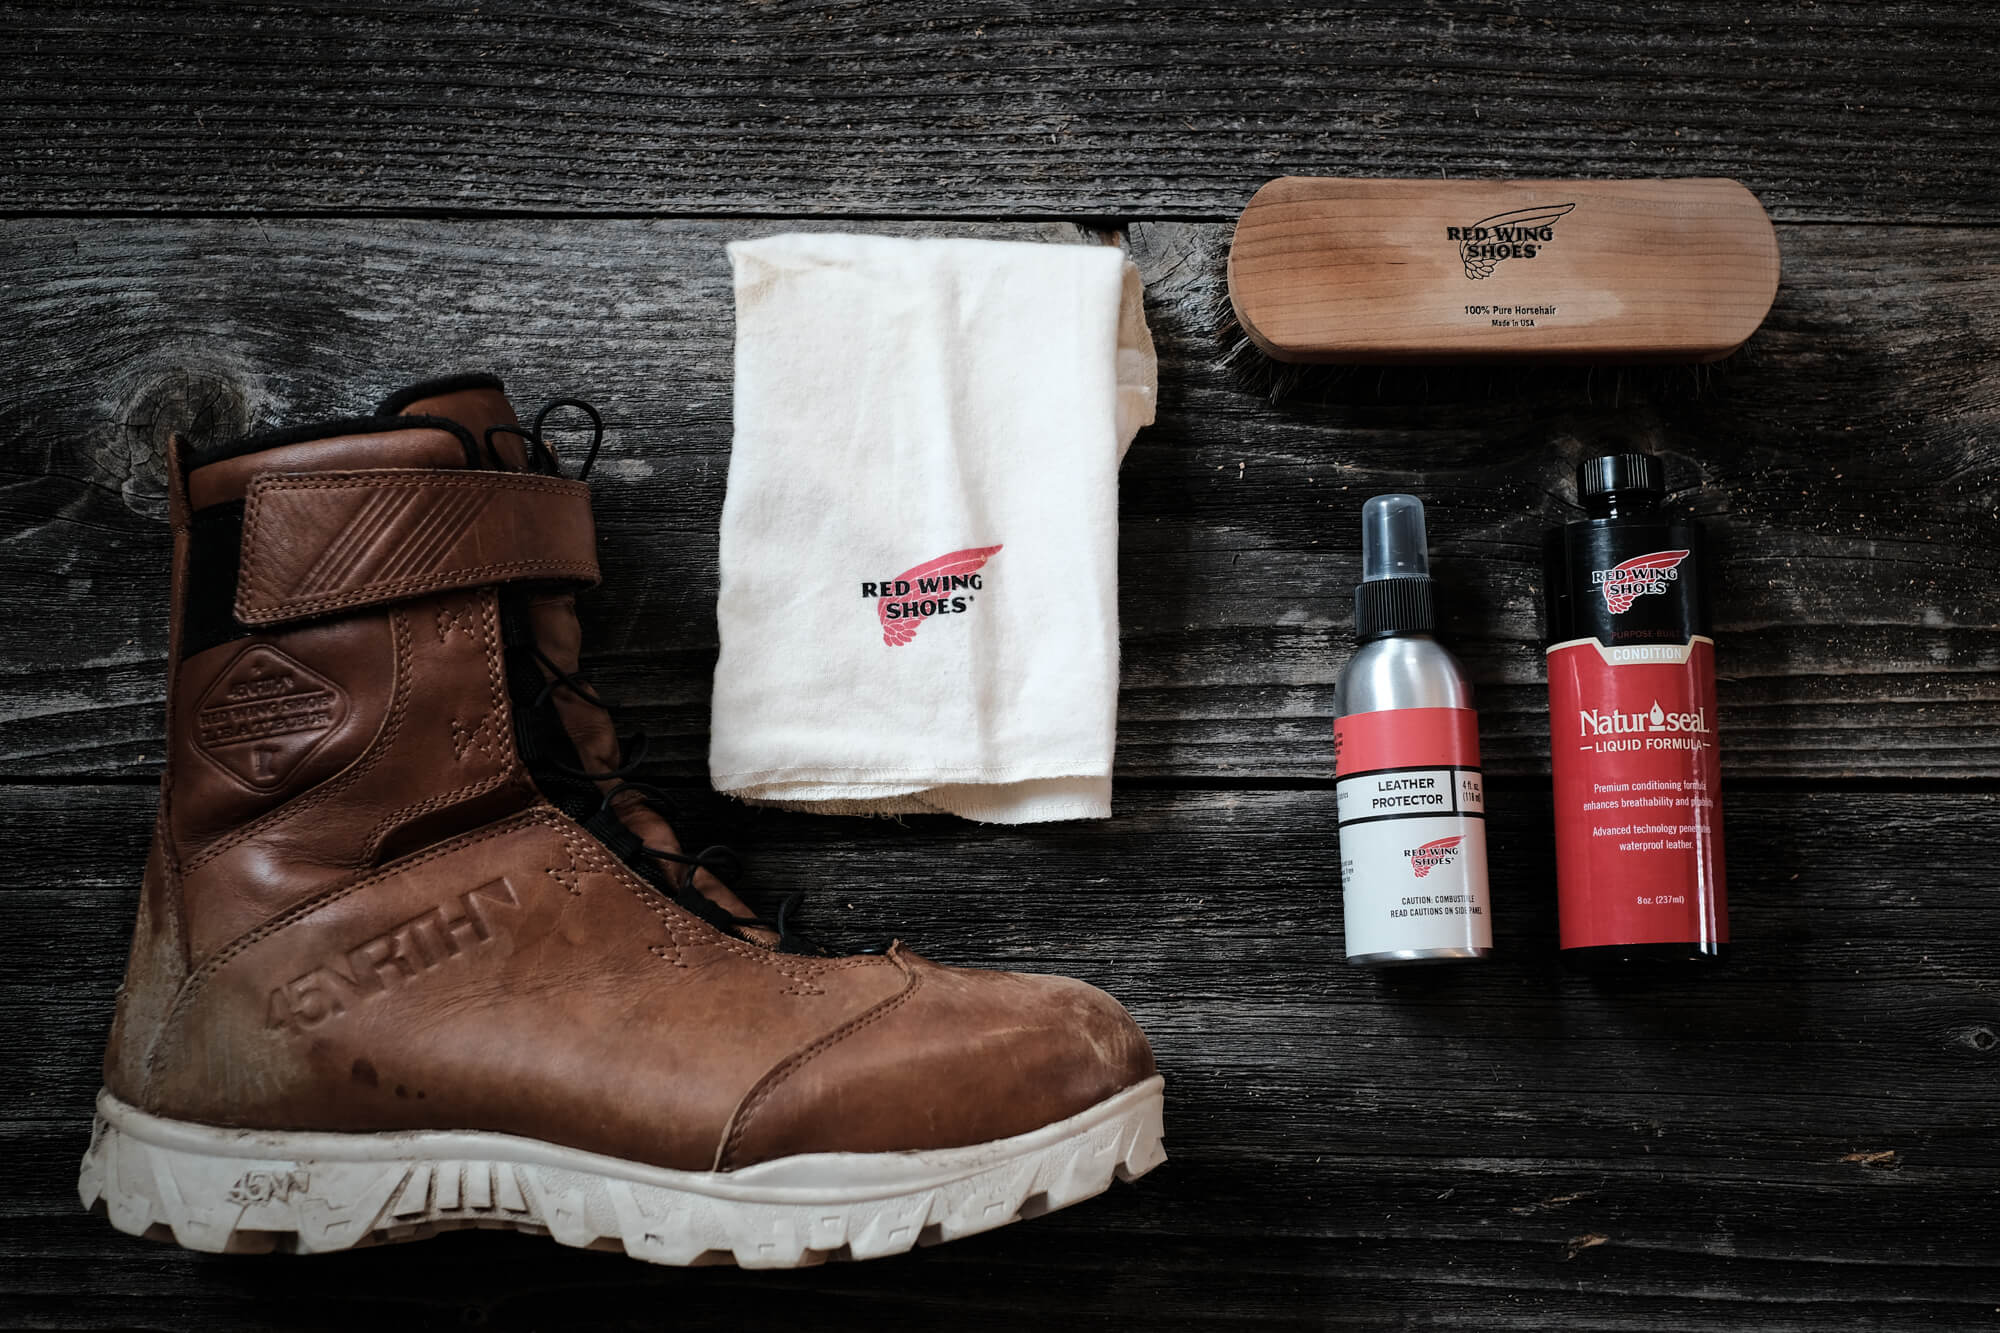 red wing boot care 45NRTH Wolvhammer